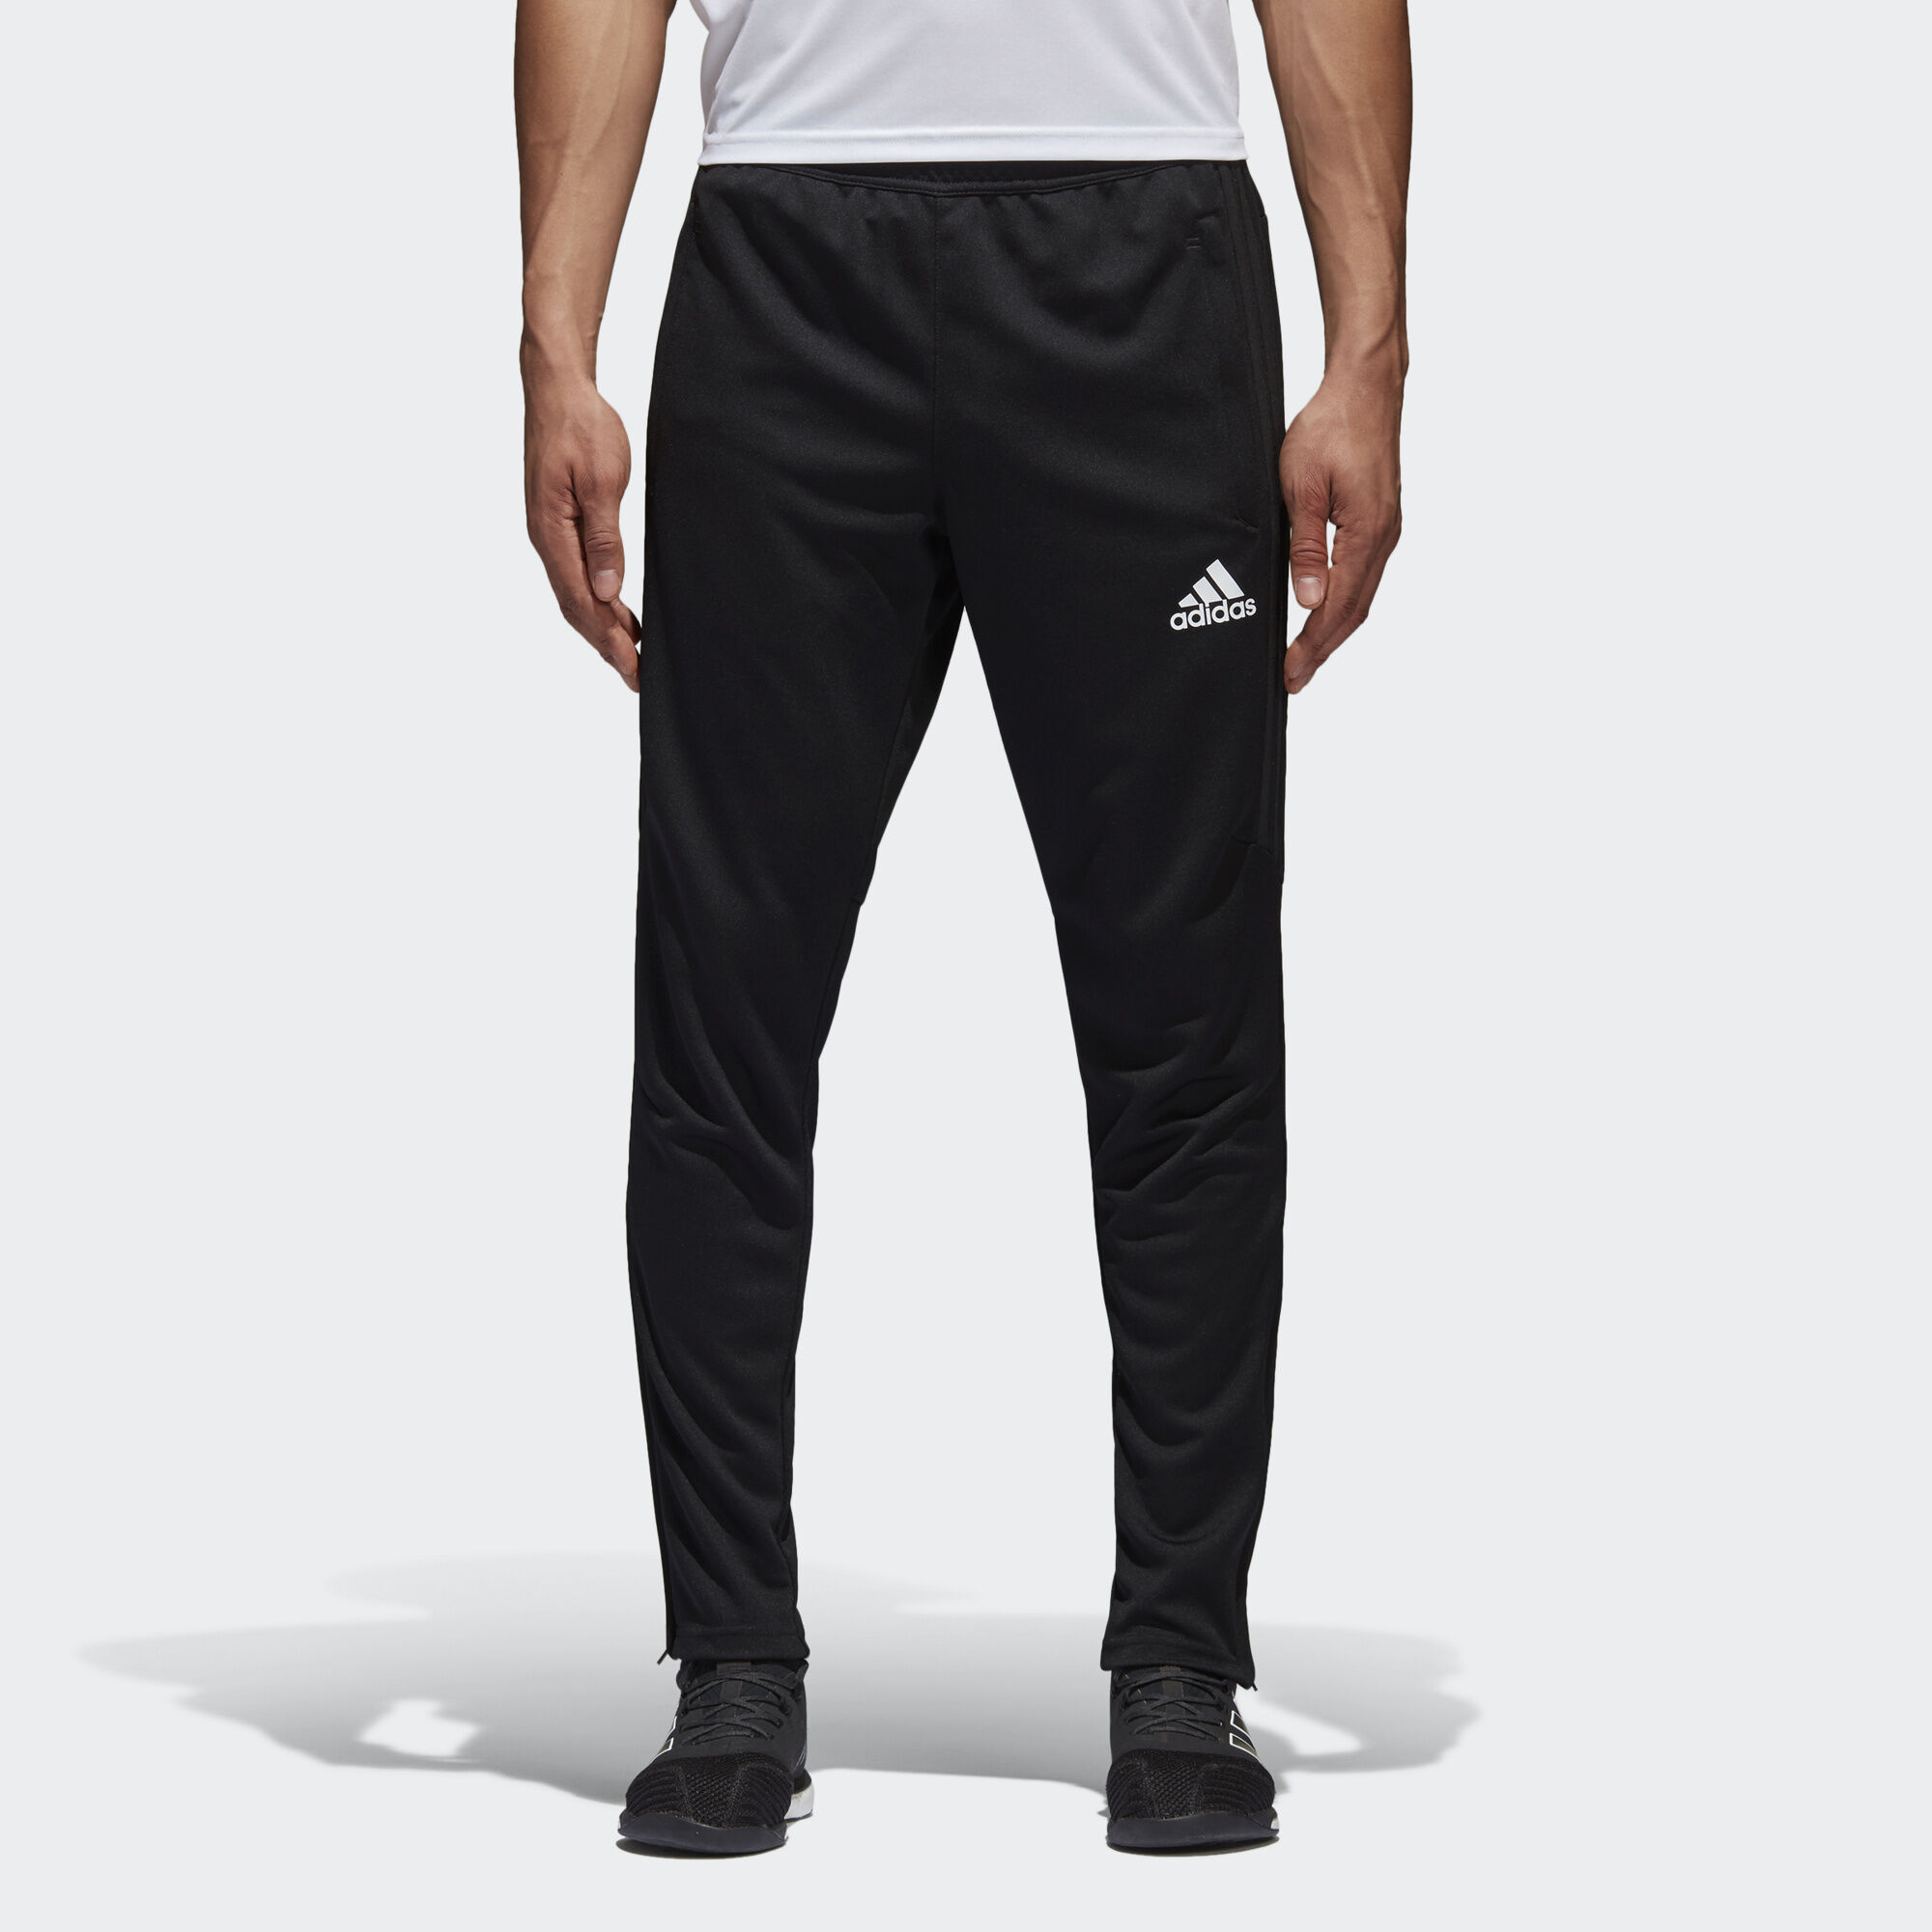 adidas tiro 17 training pants black adidas us. Black Bedroom Furniture Sets. Home Design Ideas